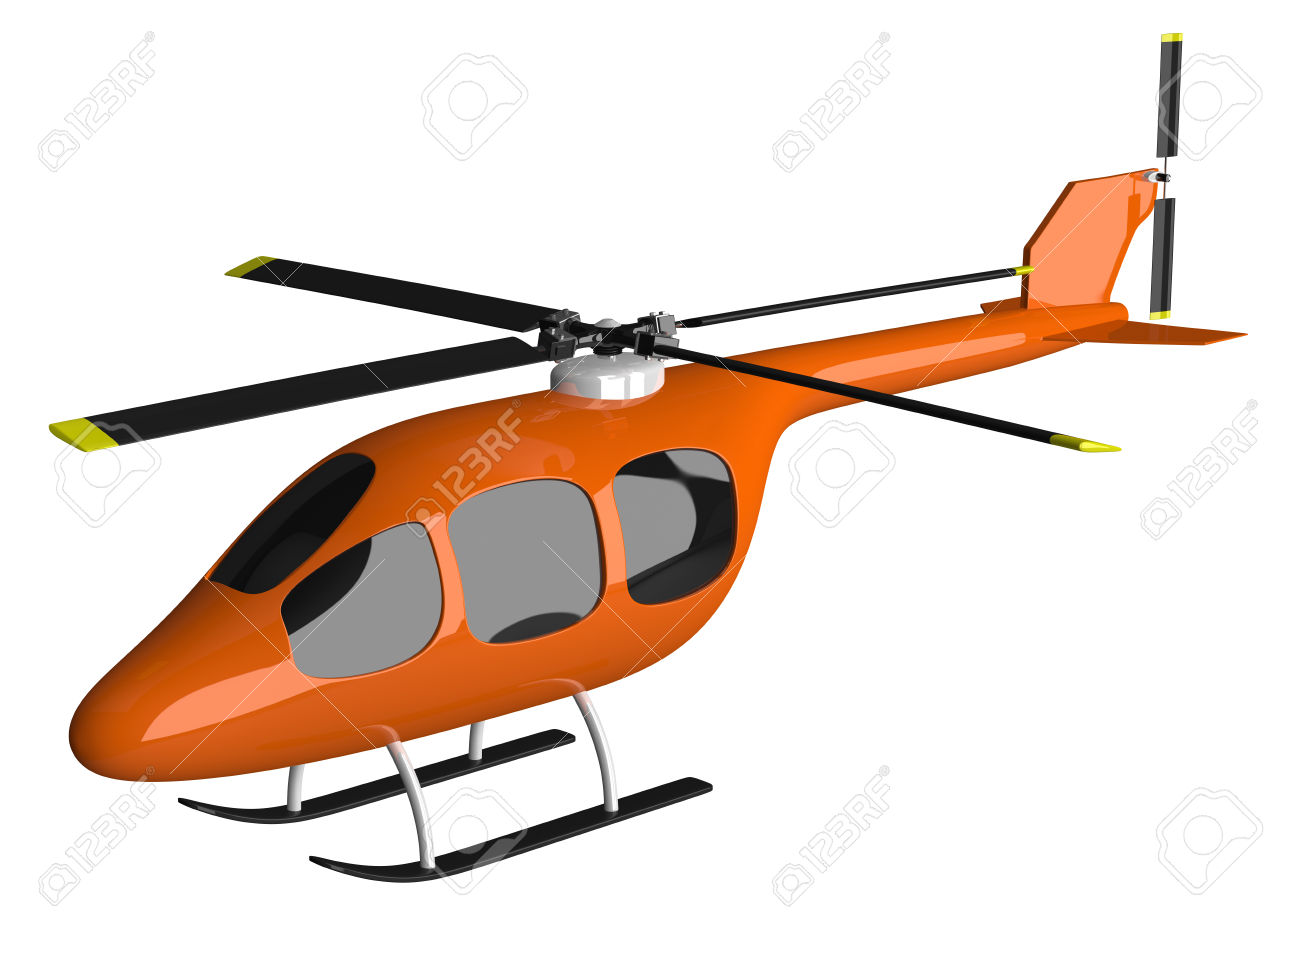 Helicopter Clipart Black And White | Free download best Helicopter ... for Helicopter Clipart Black And White  lp4eri